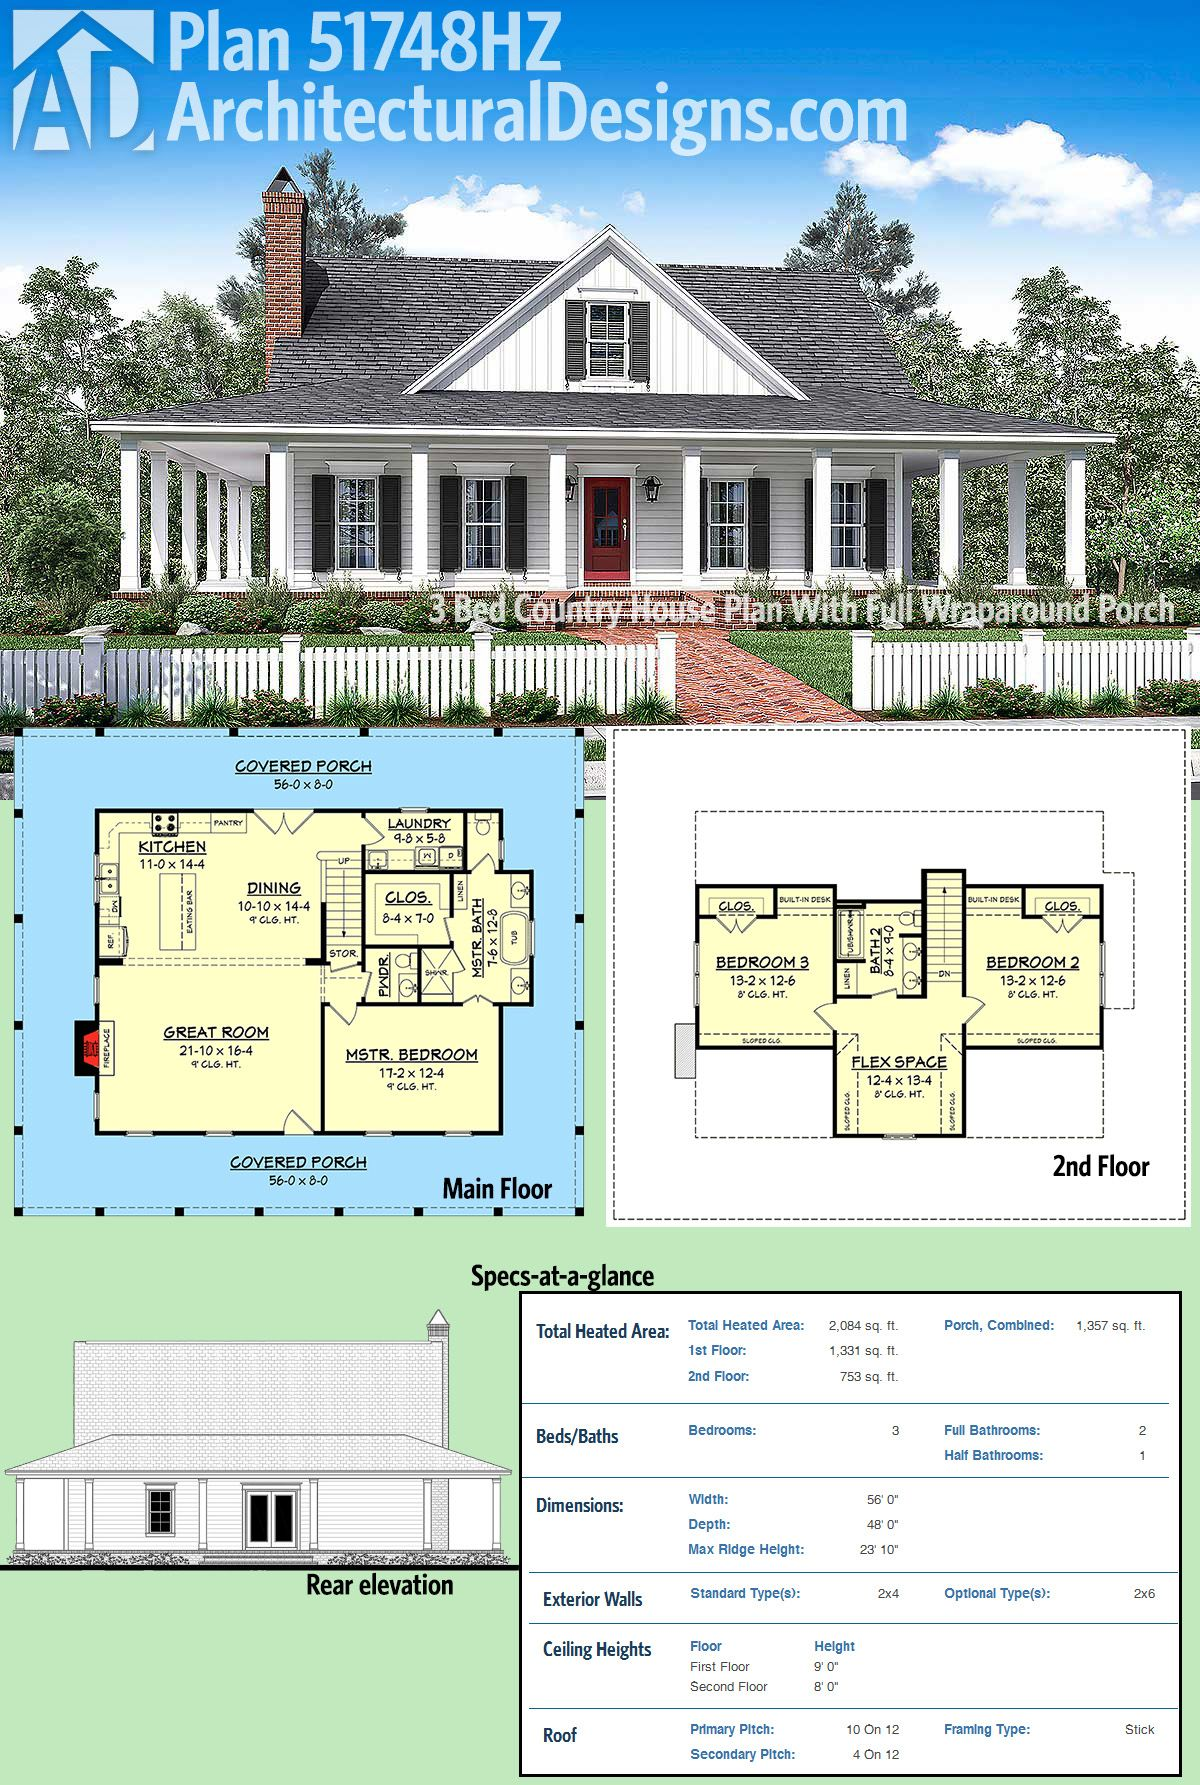 Architectural designs house plan hz gives you  full wraparound porch outside and an open concept floor inside ready when are also rh co pinterest